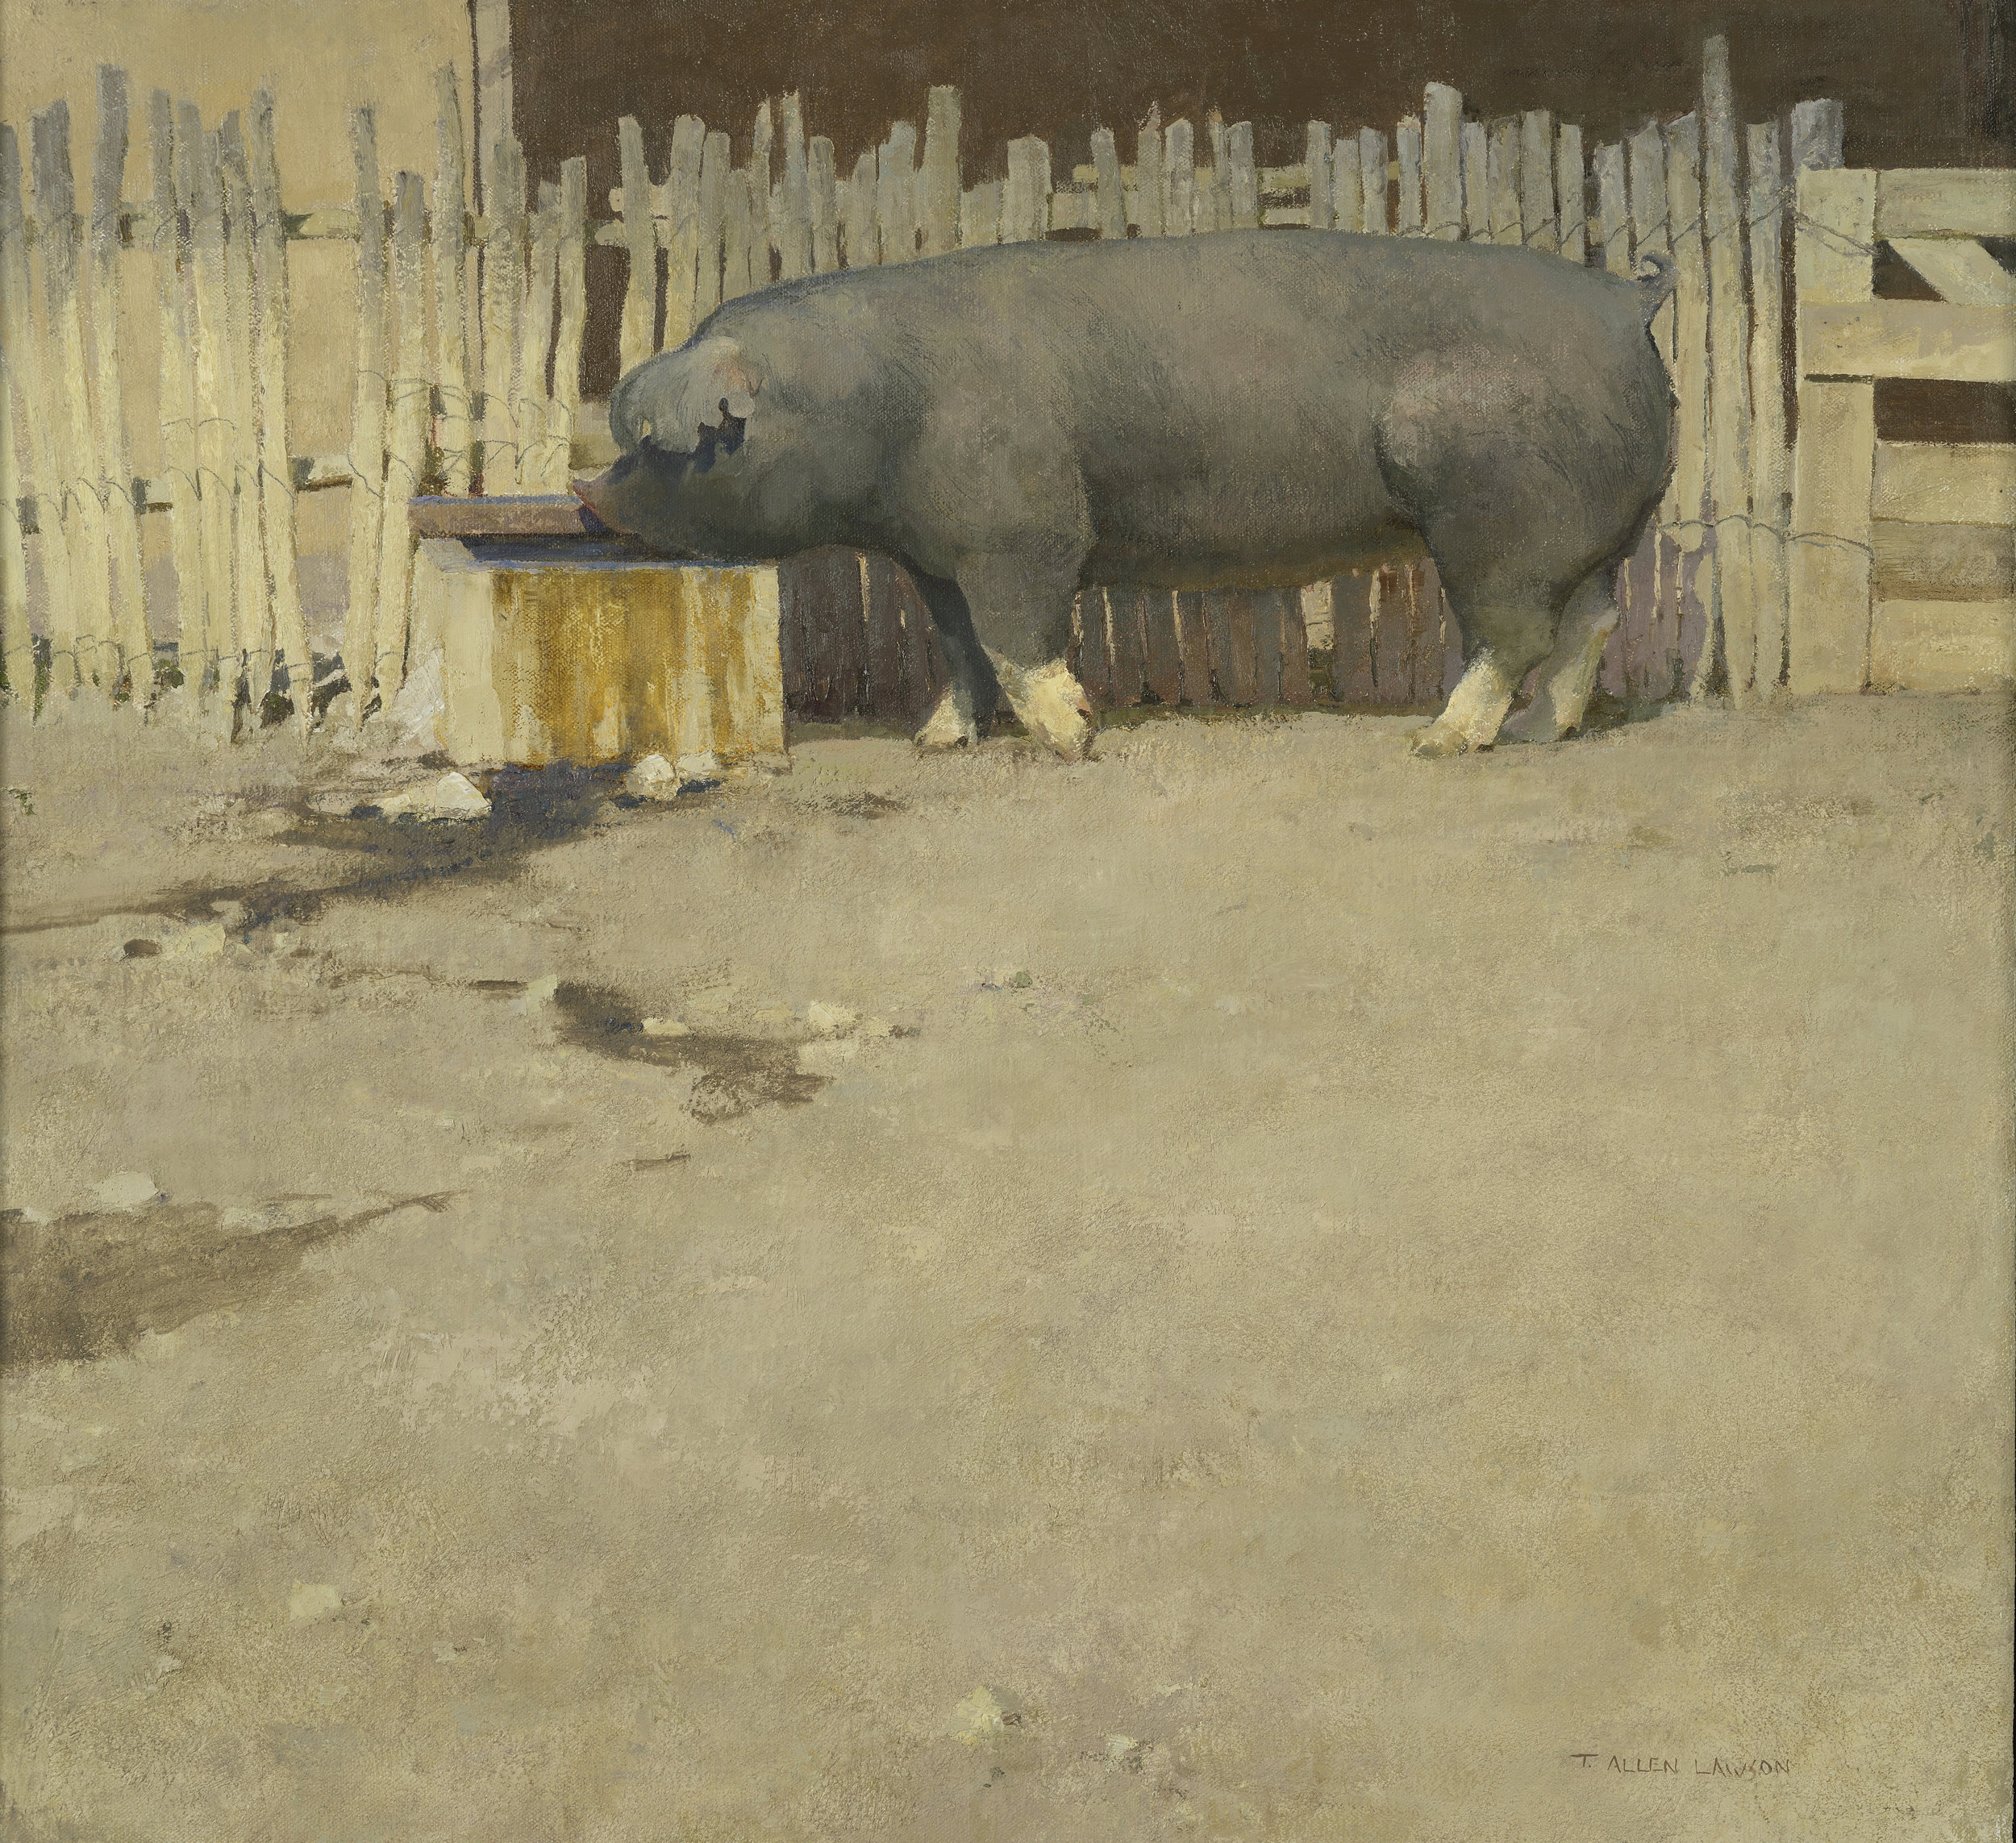 Pig, oil on linen over panel, 26 x 28in.